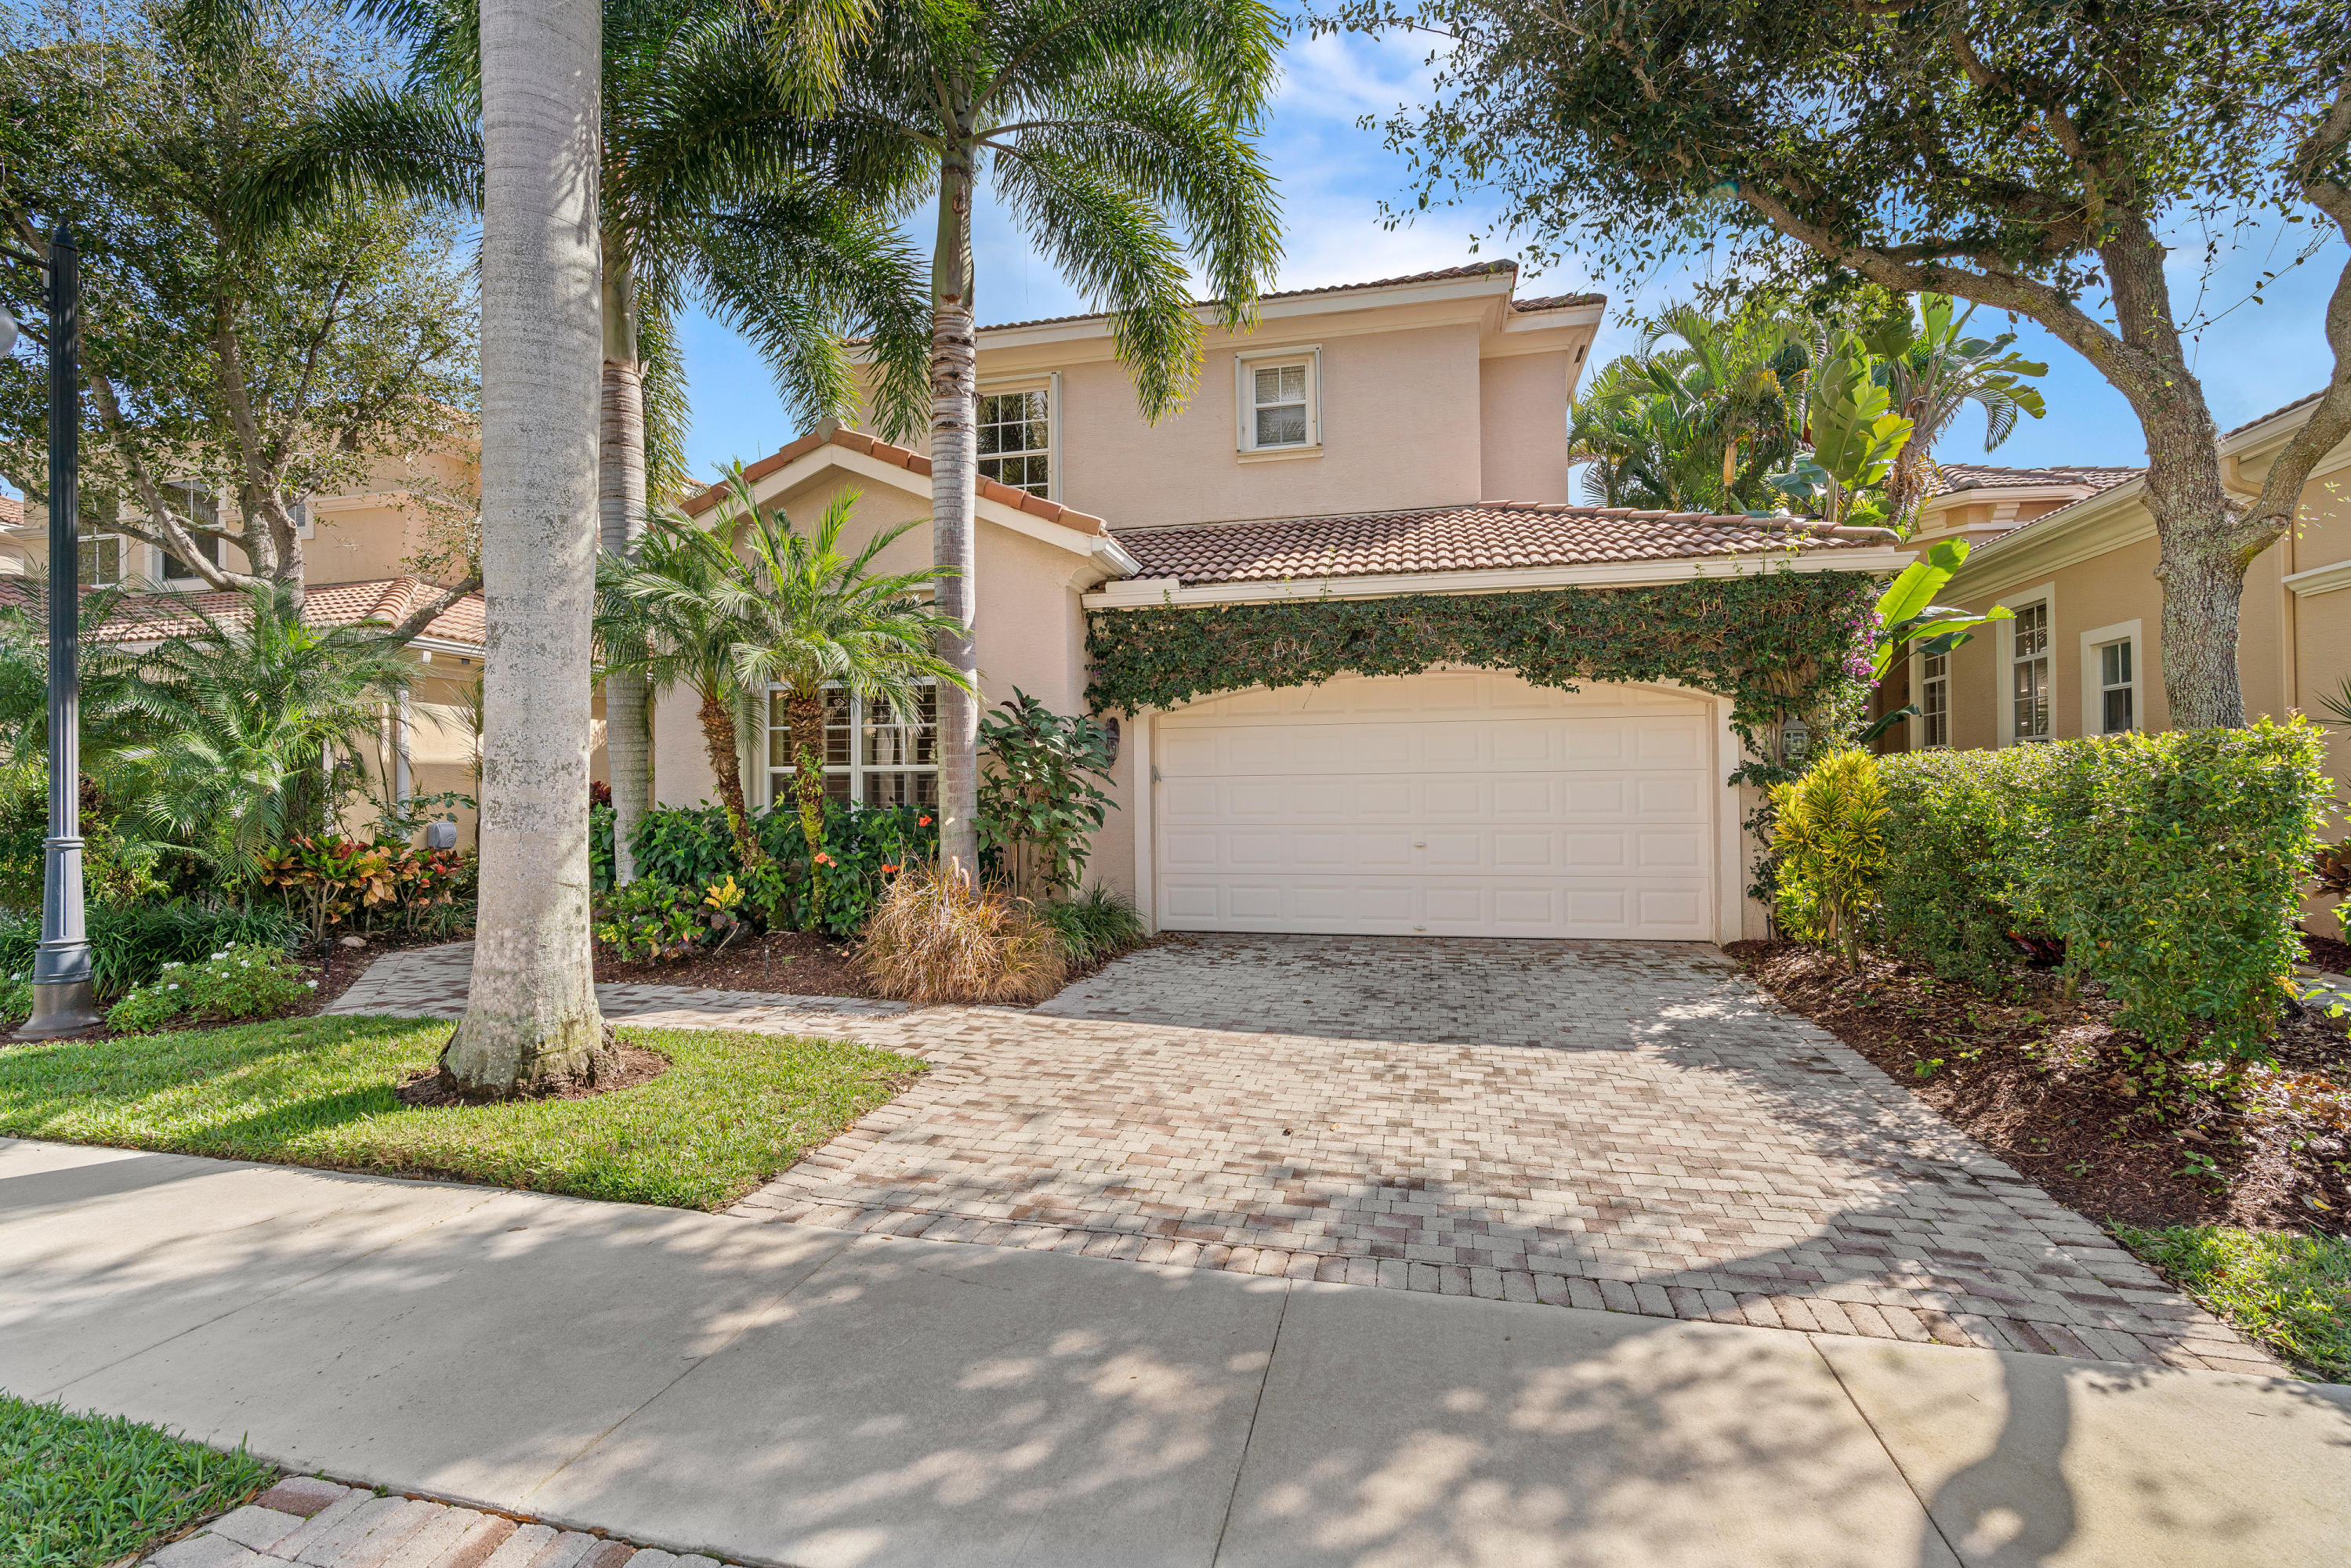 134 Andalusia Way, Palm Beach Gardens, Florida 33418, 4 Bedrooms Bedrooms, ,3 BathroomsBathrooms,A,Single family,Andalusia,RX-10603641